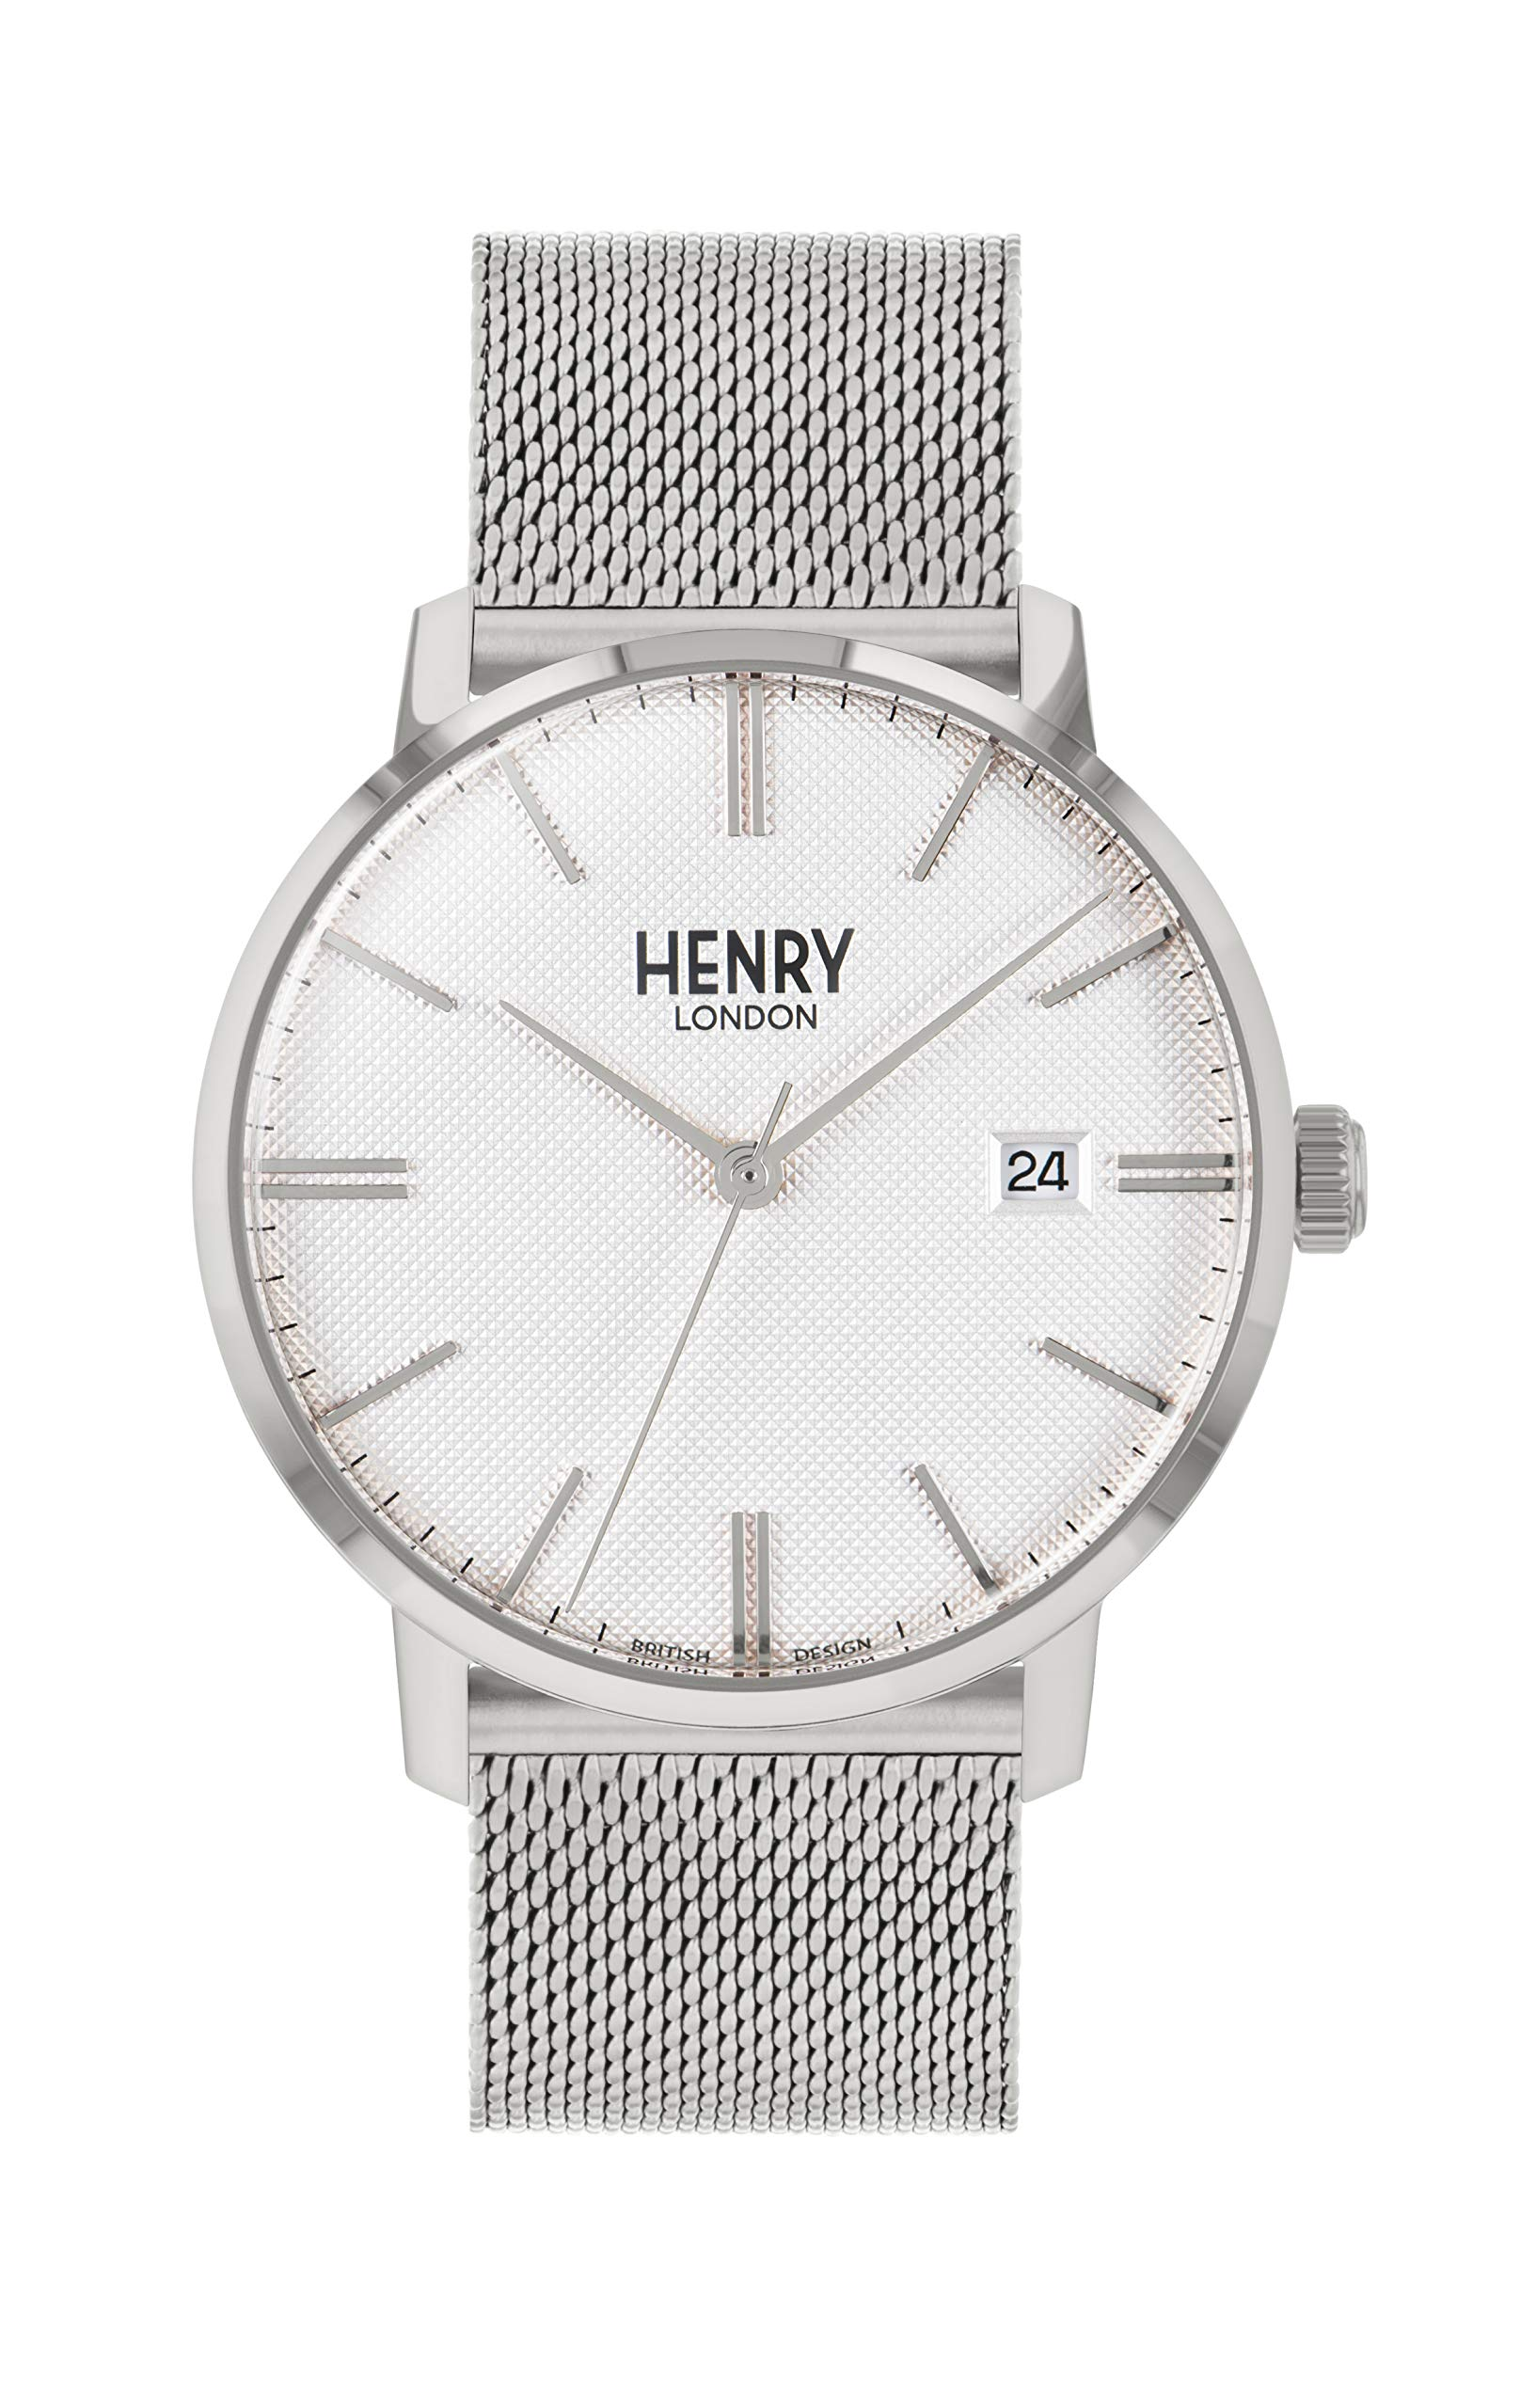 Henry London Unisex Adult Analogue Classic Quartz Watch with Stainless Steel Strap HL40-M-0373